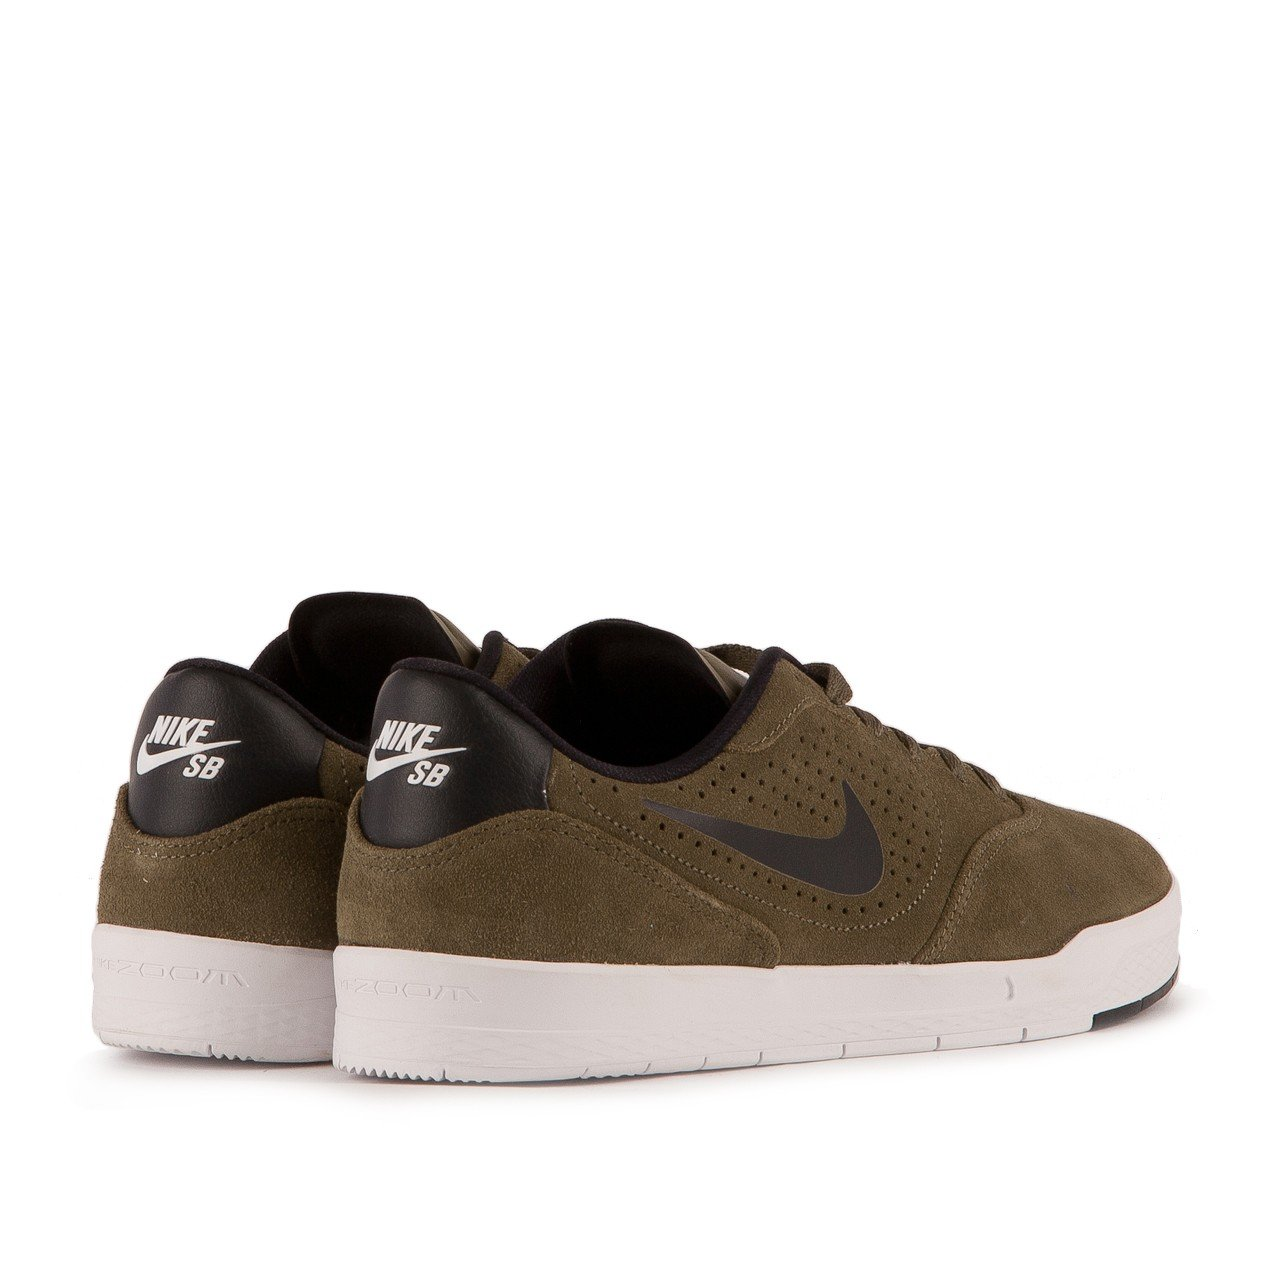 best loved fdc31 46c6d Nike SB Paul Rodriguez 9 CS Trainers, Olive Black  Amazon.co.uk  Shoes    Bags